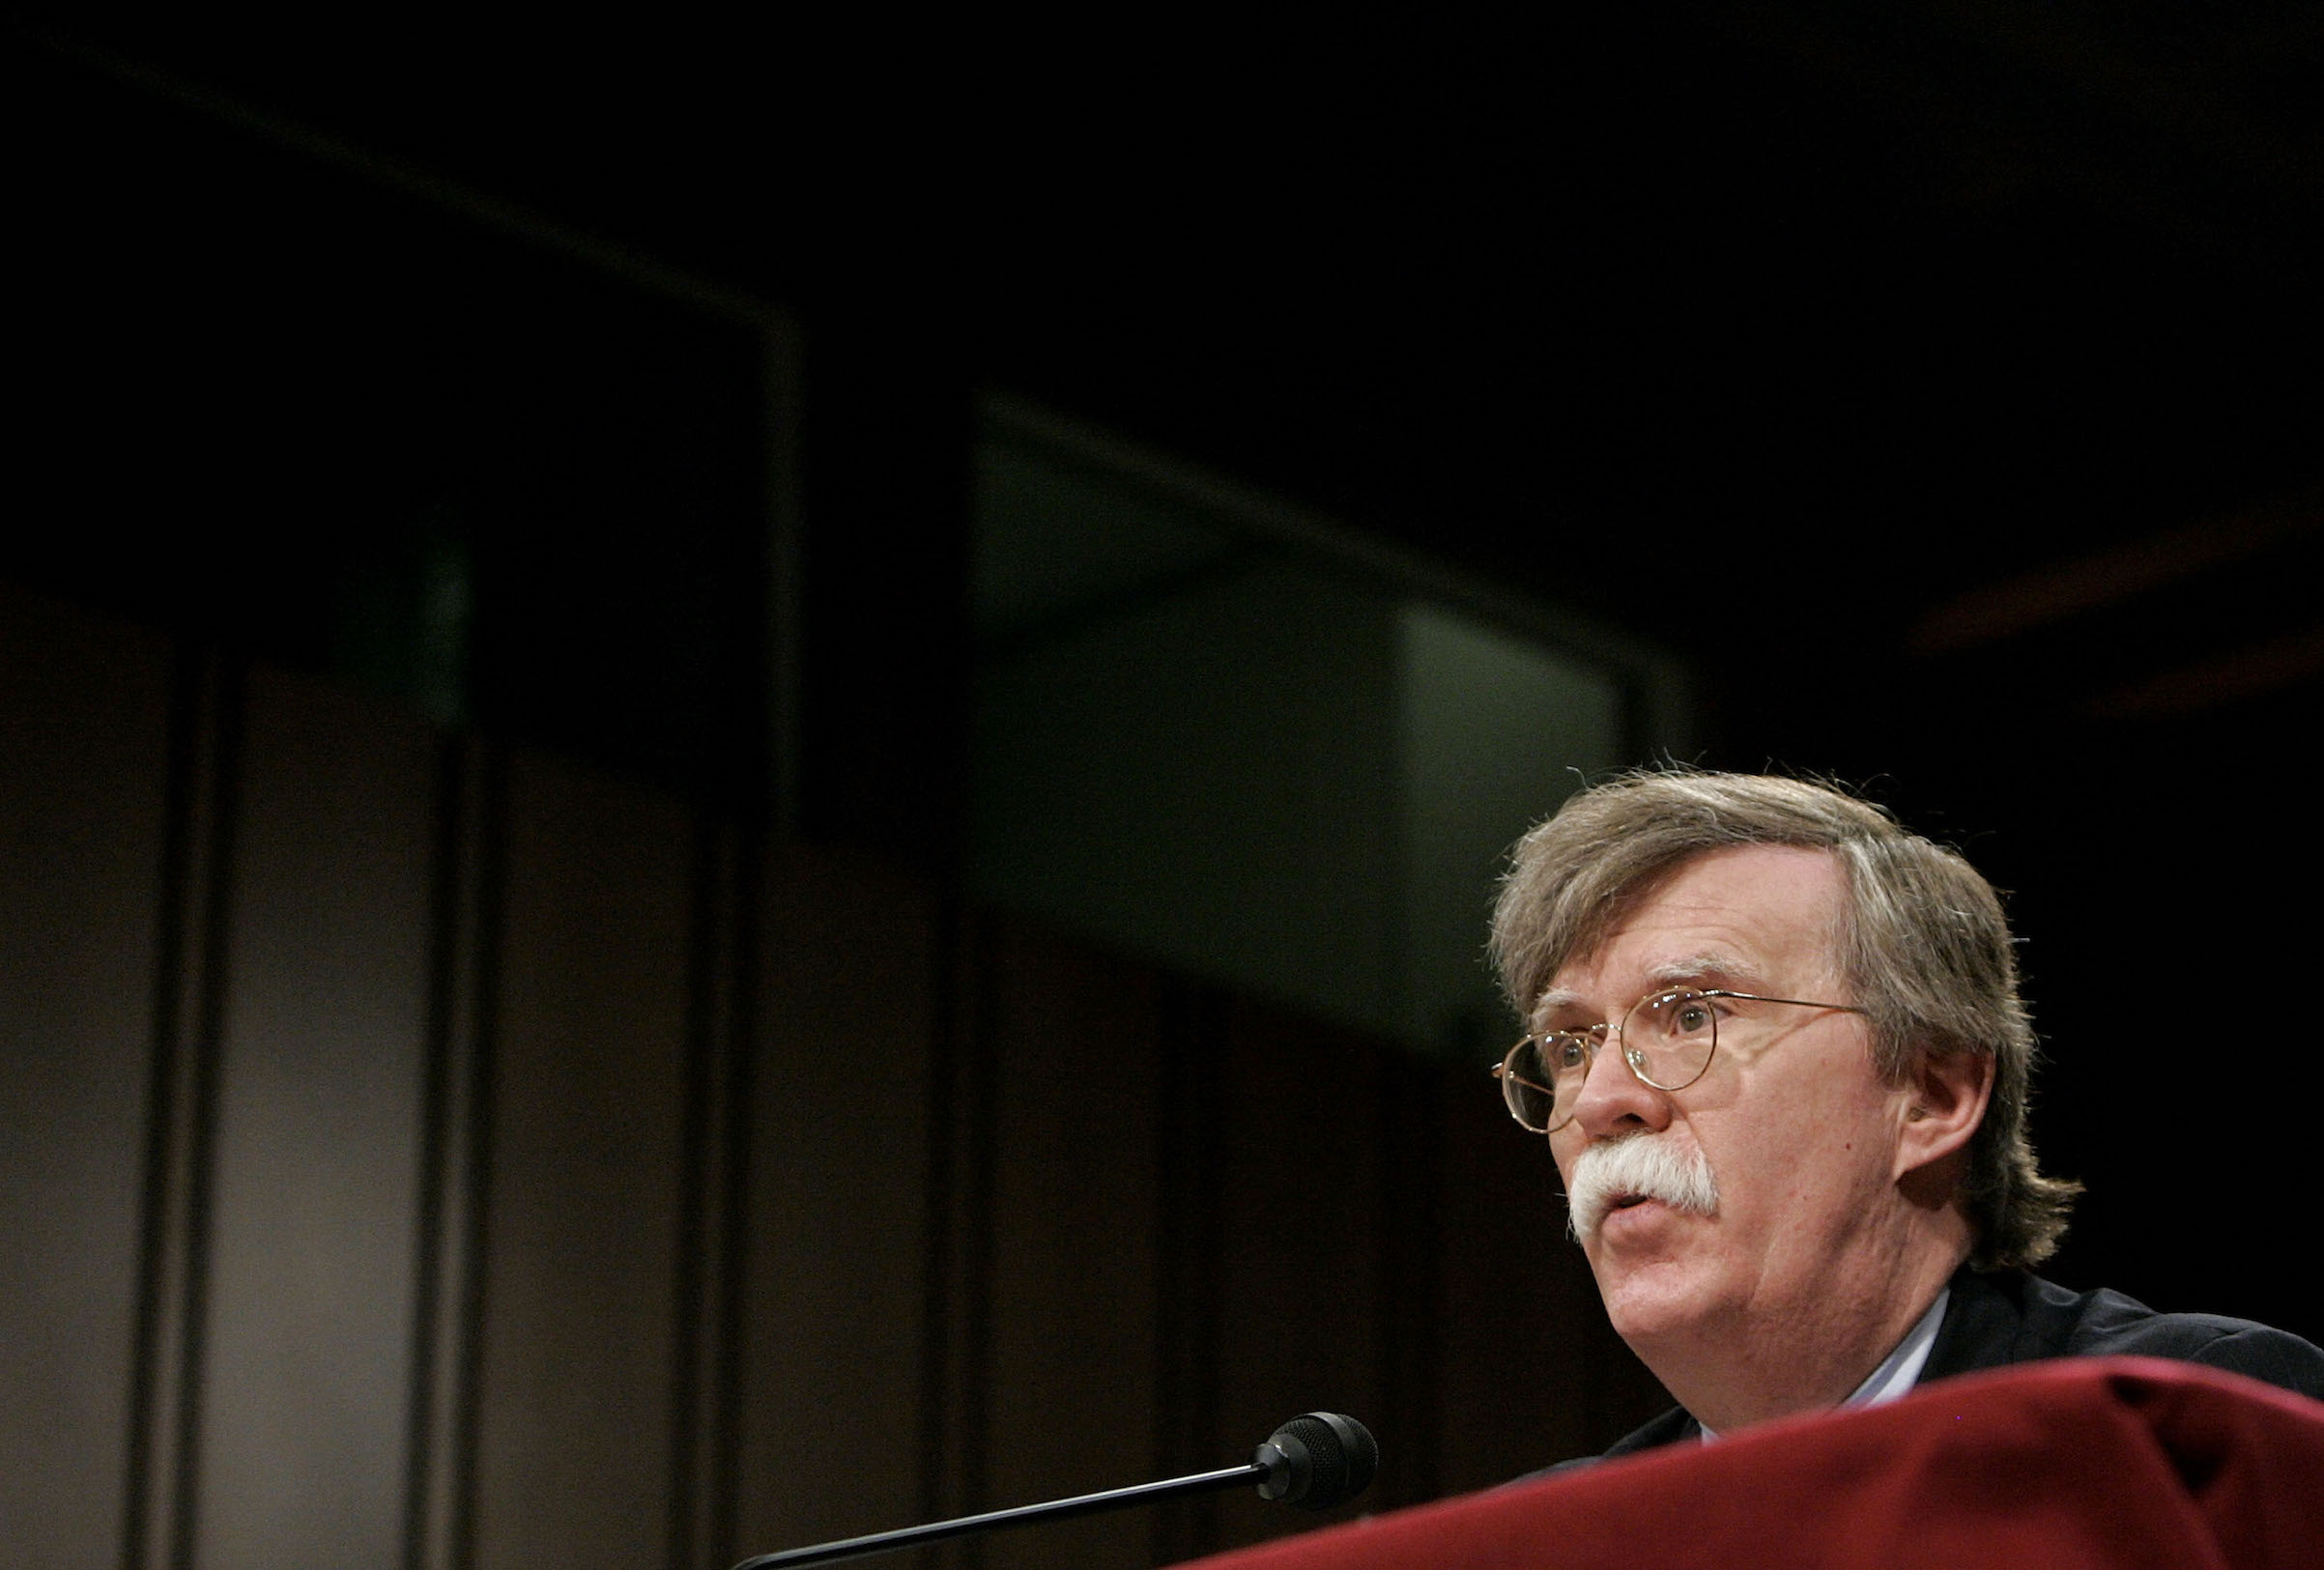 John Bolton testifies during a Senate Foreign Relations Committee hearing on Capitol Hill April 11, 2005 in Washington, D.C. The committee is hearing testimony from Bolton who has been nominated to be U.S. representative to the United Nations.